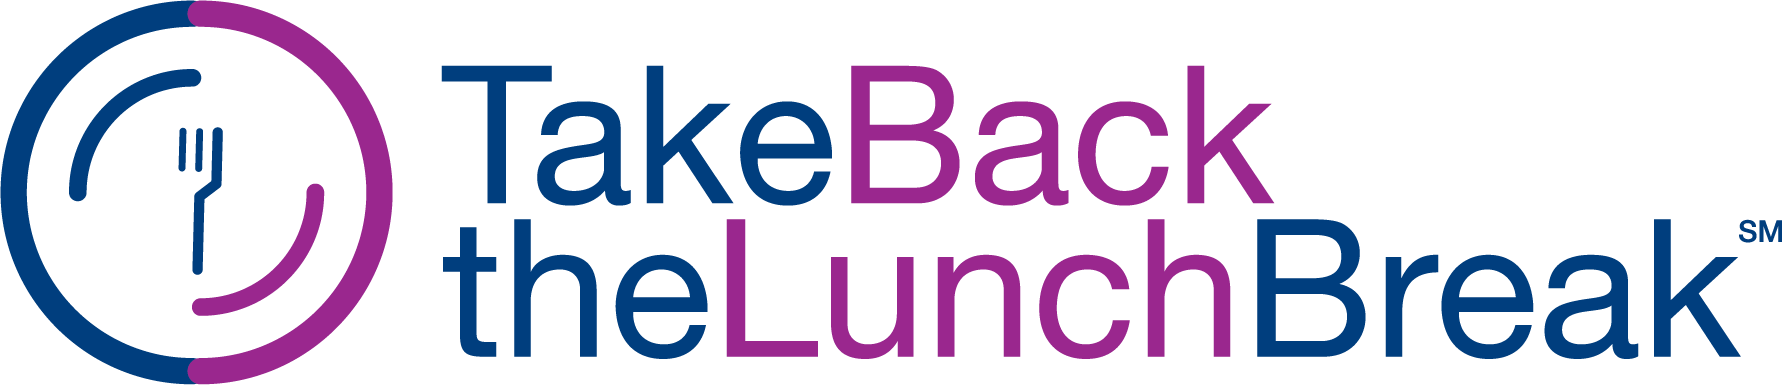 Take back the lunch break free downloadable toolkit of resources for restaurant owners to engage and attract diners